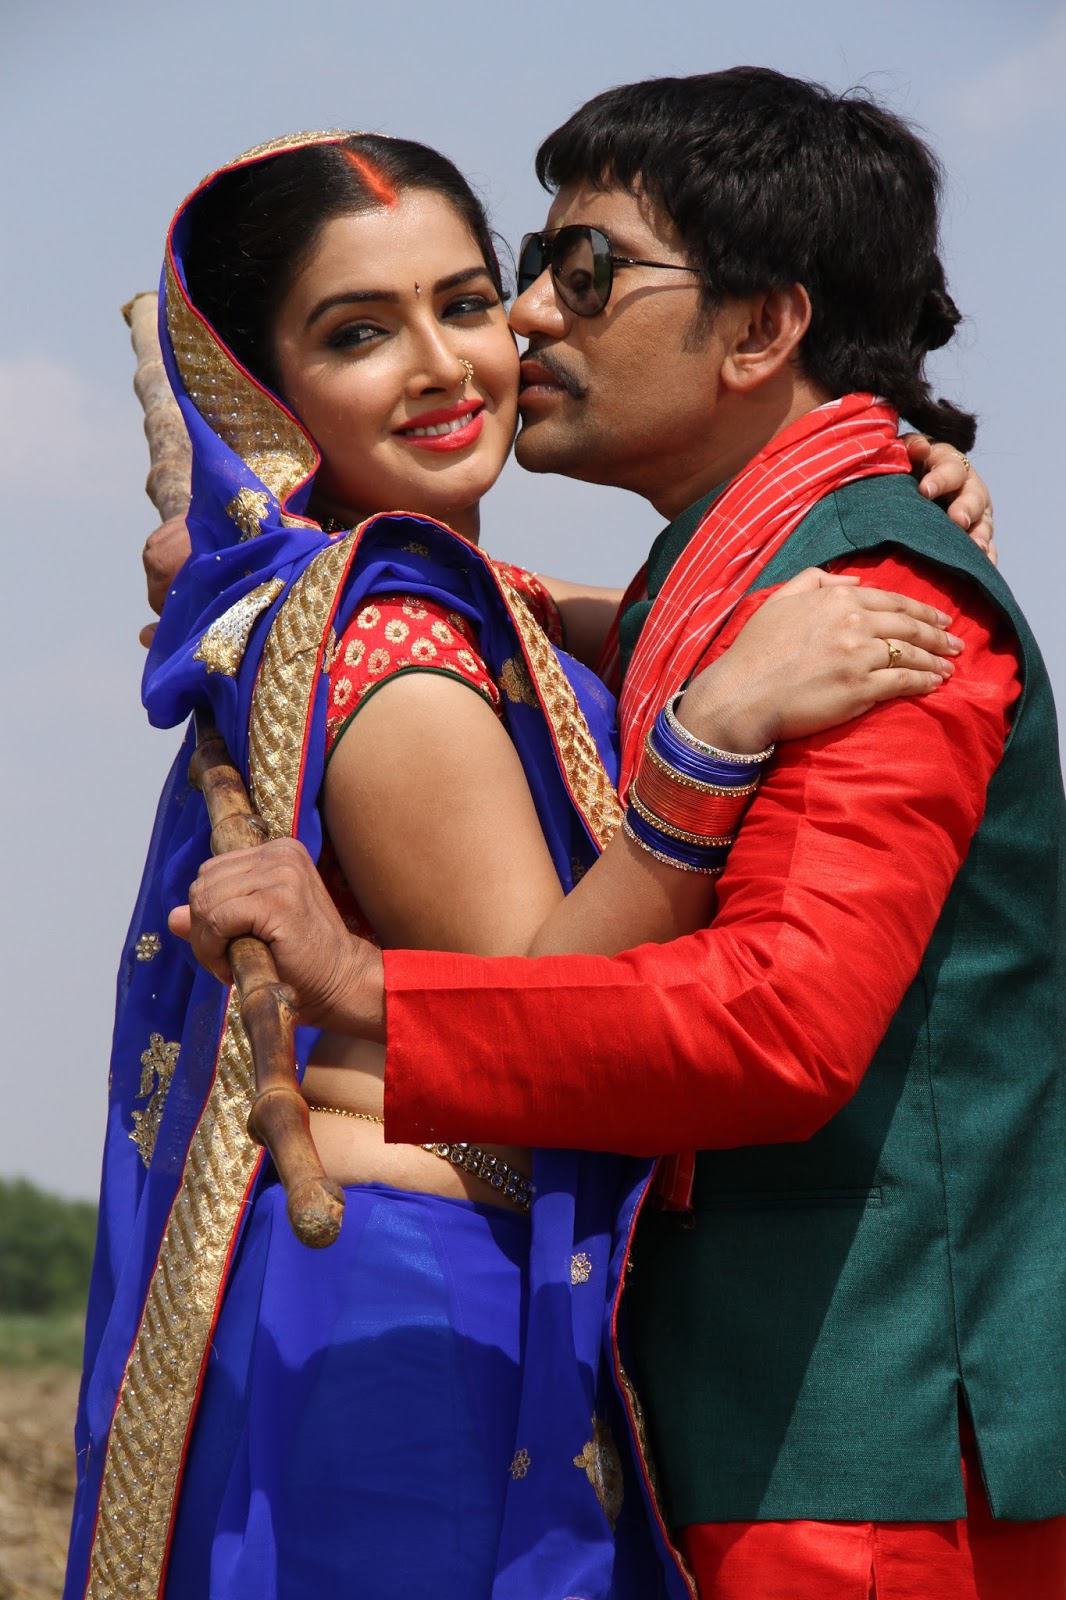 Amrapali Dubey Unseen HQ Romantic Stills Spicy Photos Kissing Romance Scenes Beautiful Amrapali Dubey